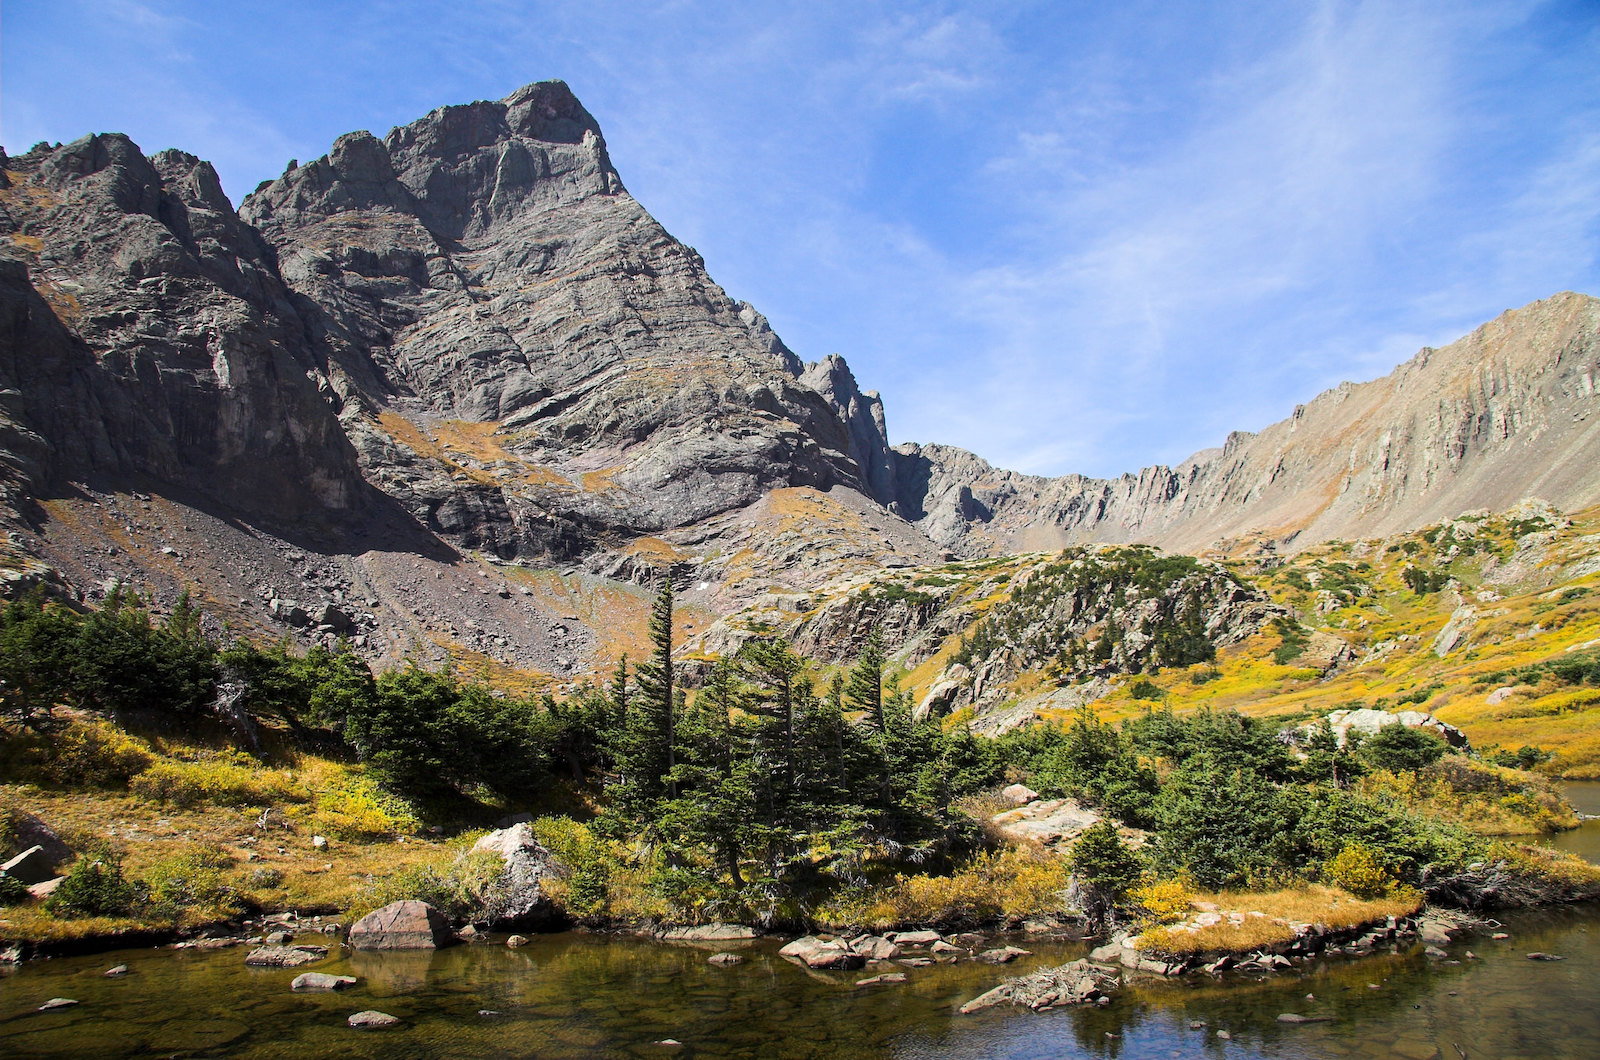 Image of the South Colony Lakes and Crestone Needle